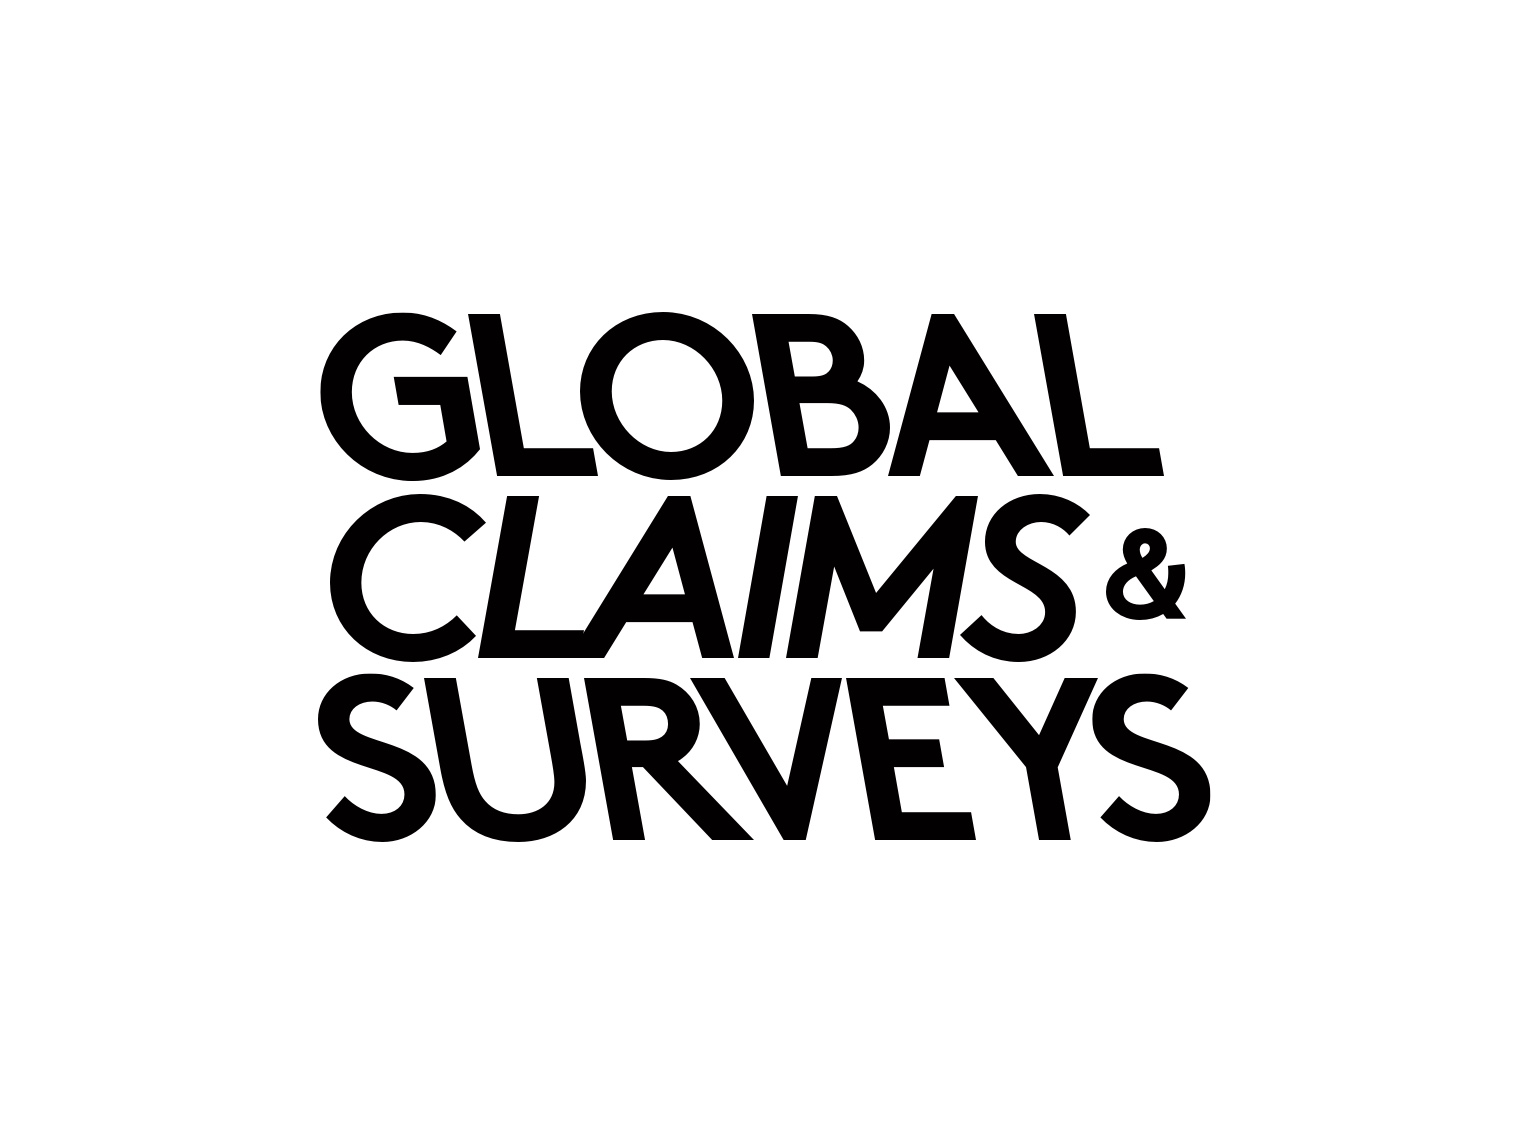 GLOBAL CLAIMS & SURVEYS / IDENTIDAD CORPORATIVA / BRANDING